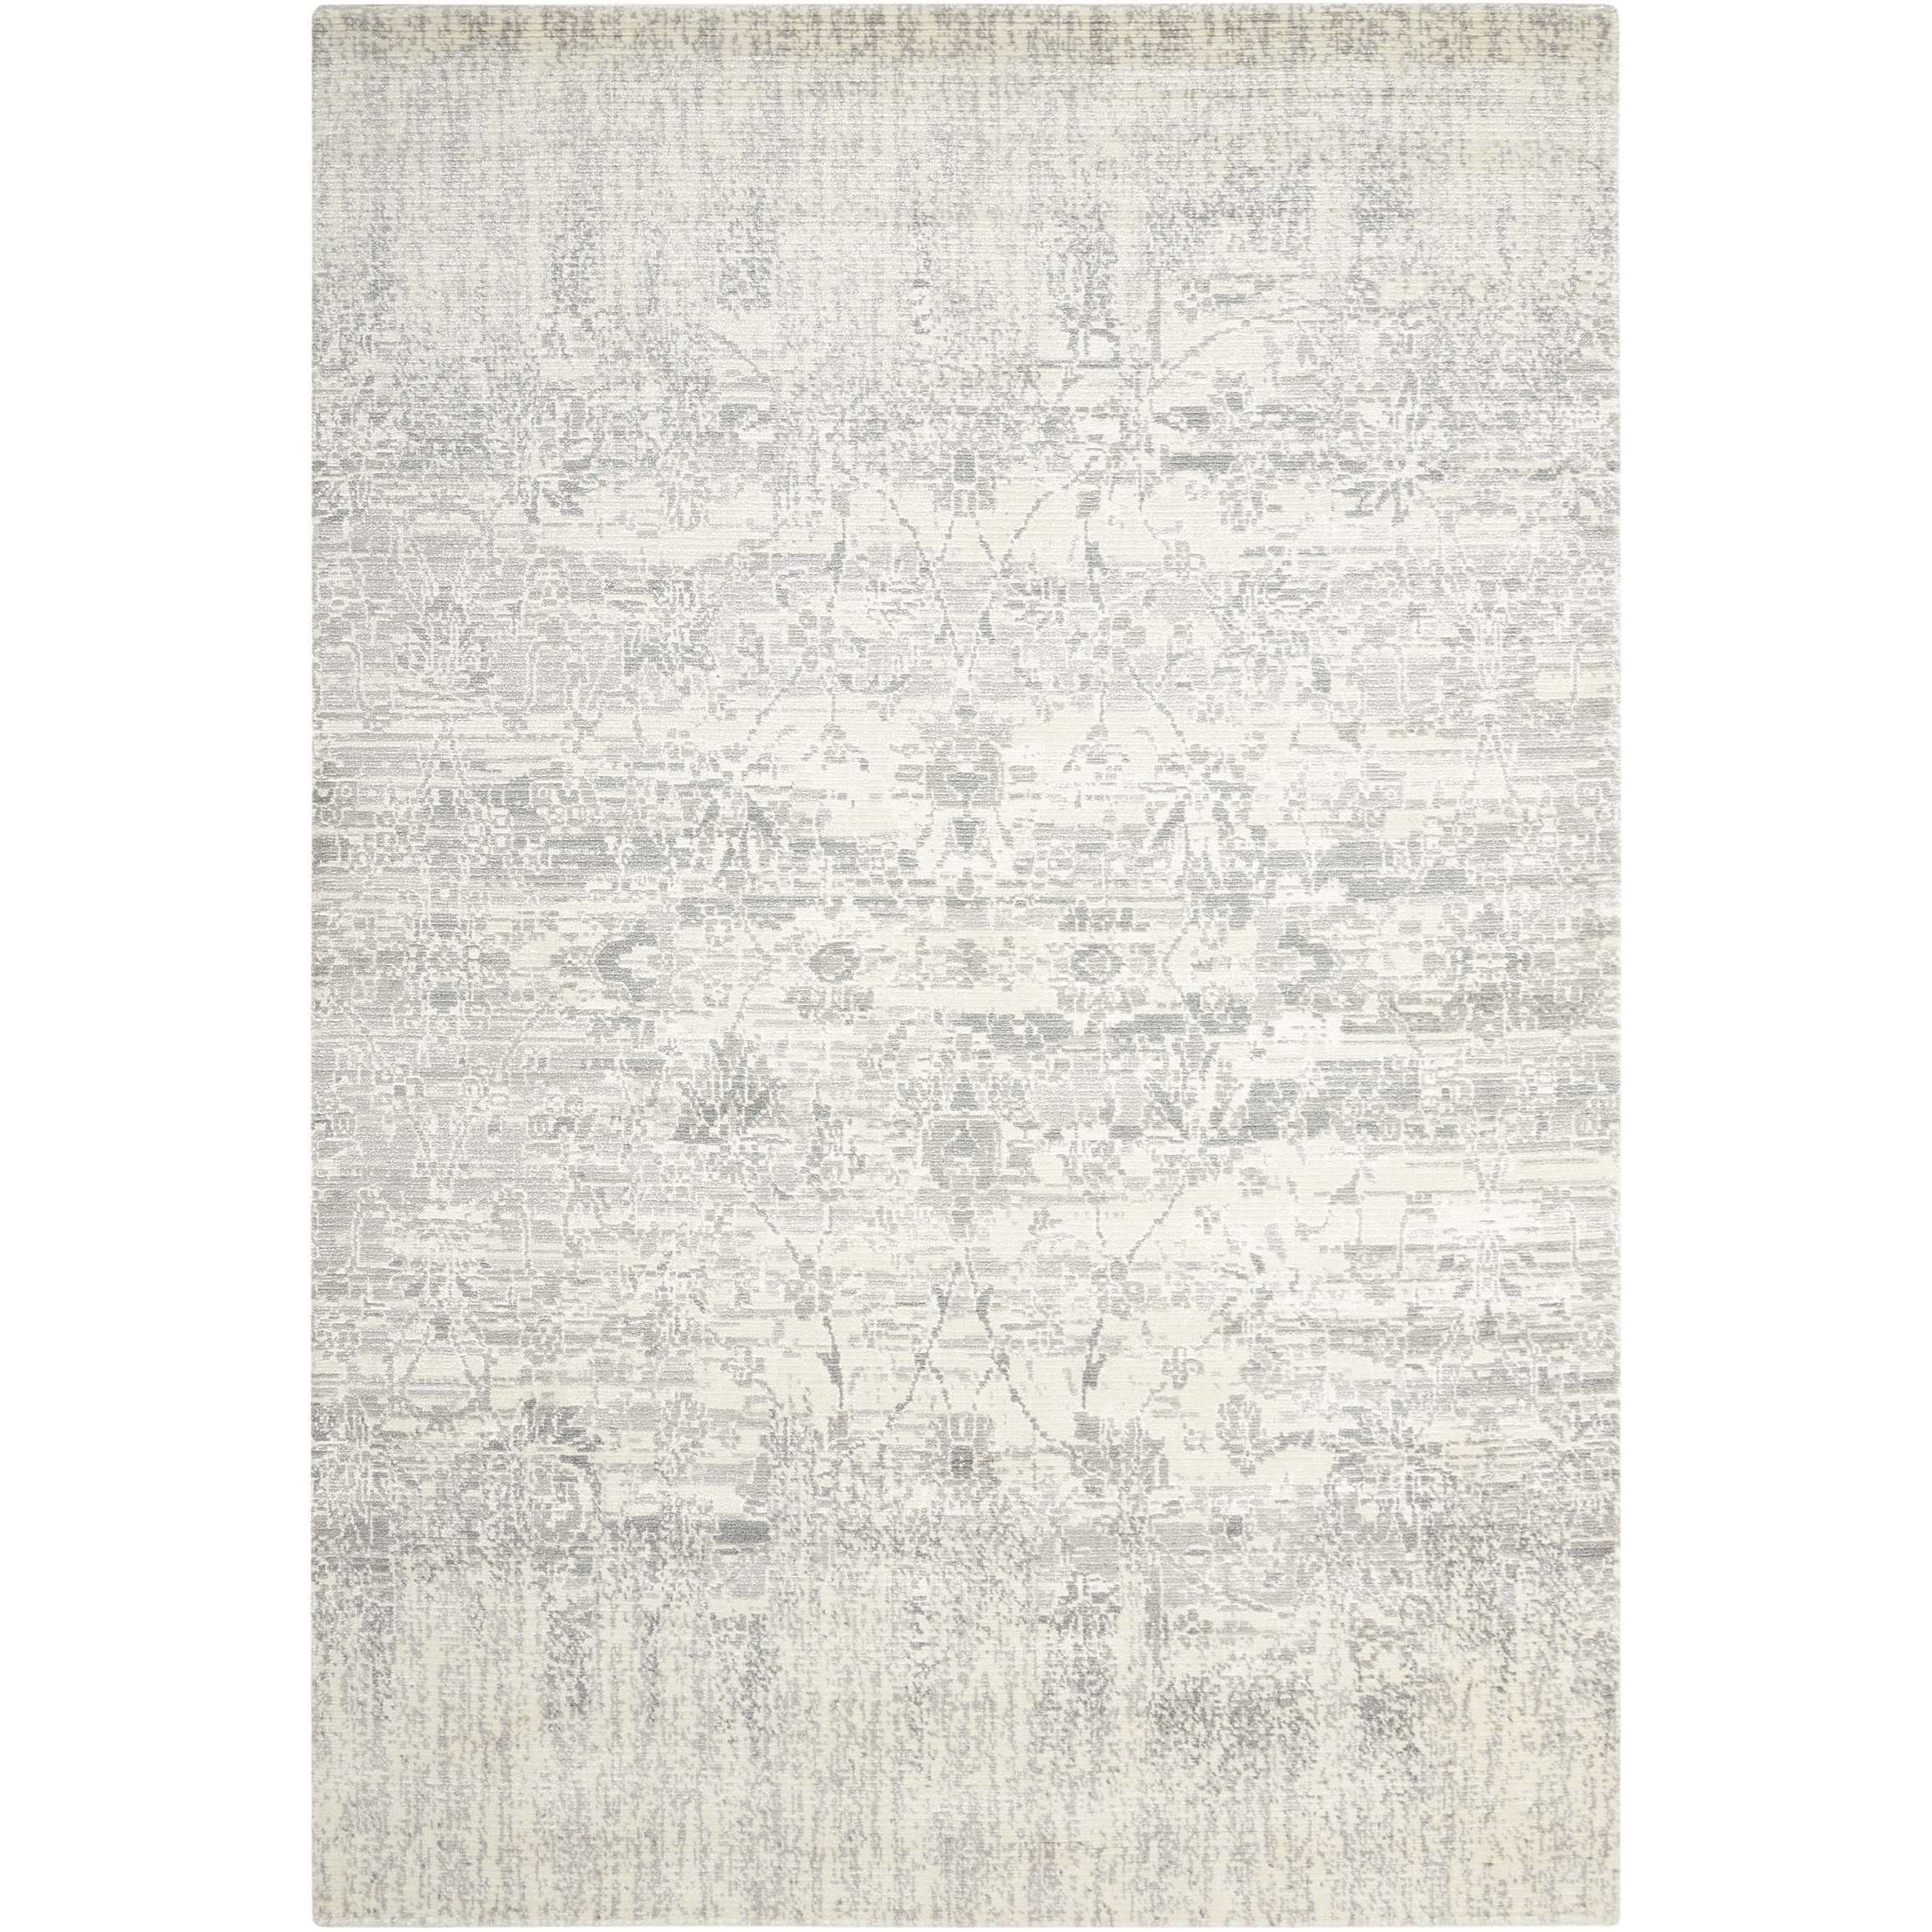 "Twilight1 5'6"" X 8' Ivory Rug by Nourison at Home Collections Furniture"